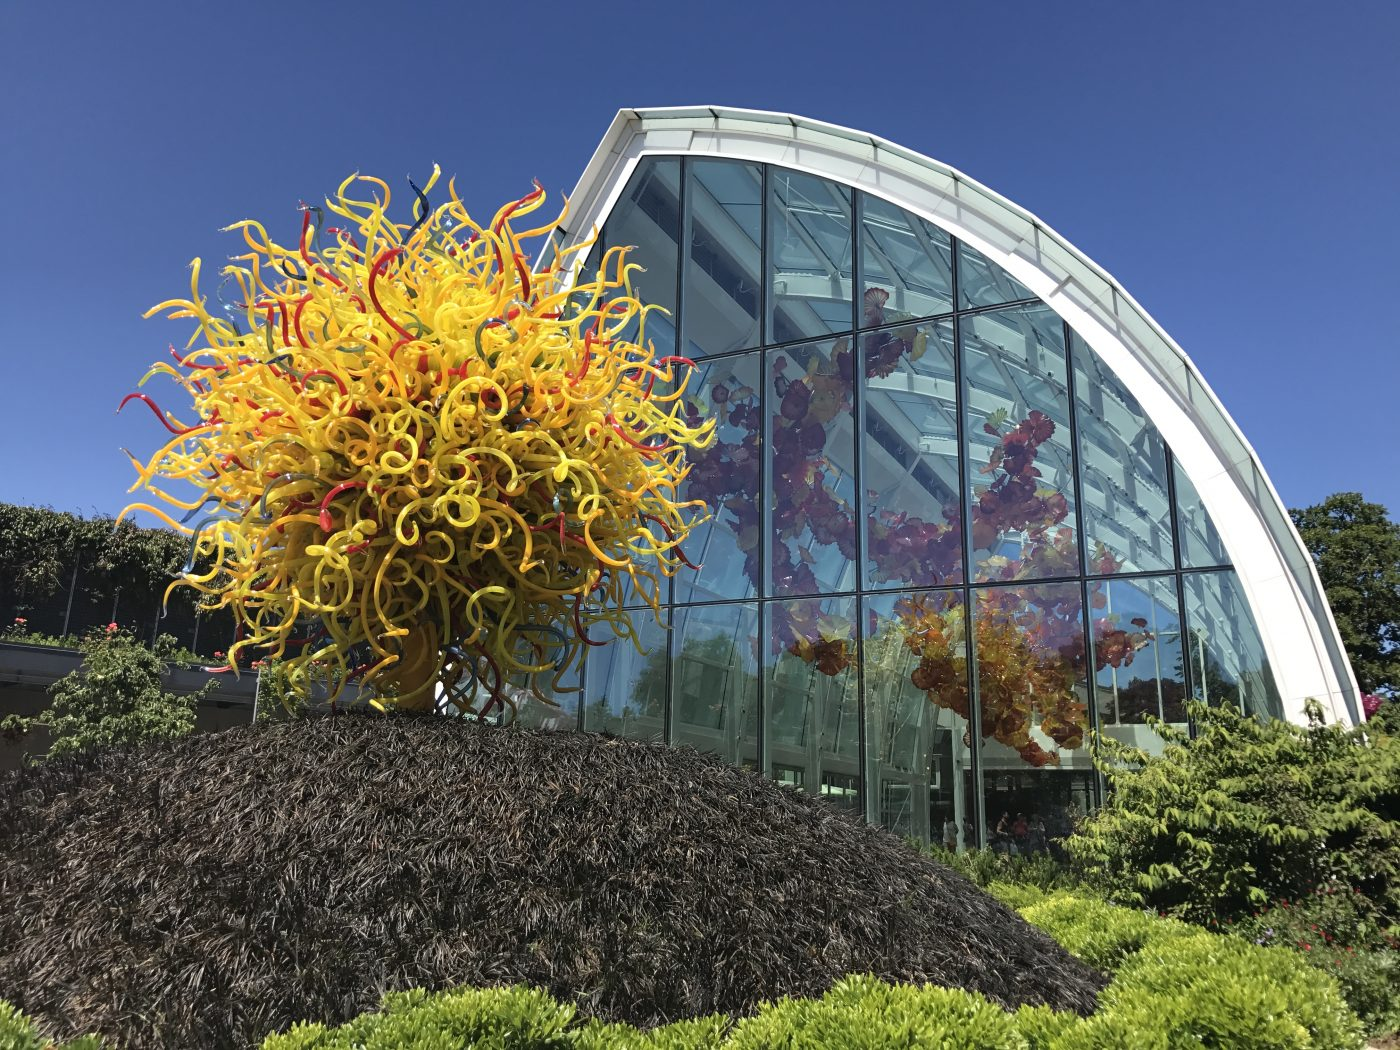 Best US Cities: Chihuly Glass Museum Seattle